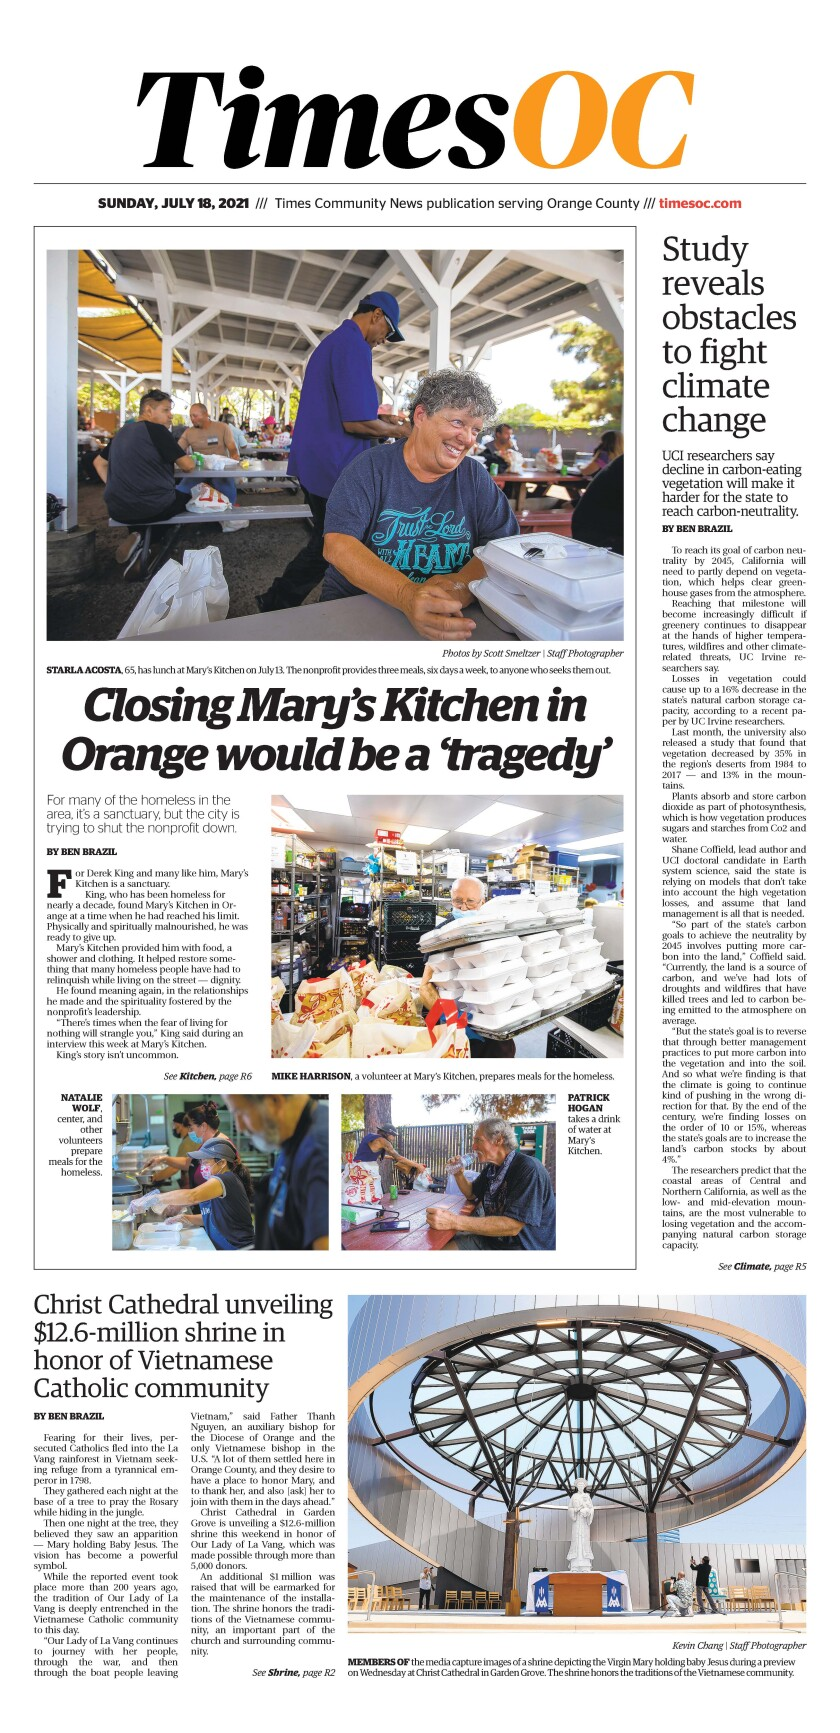 Front page of TimesOC e-newspaper for Sunday, July 18, 2021.